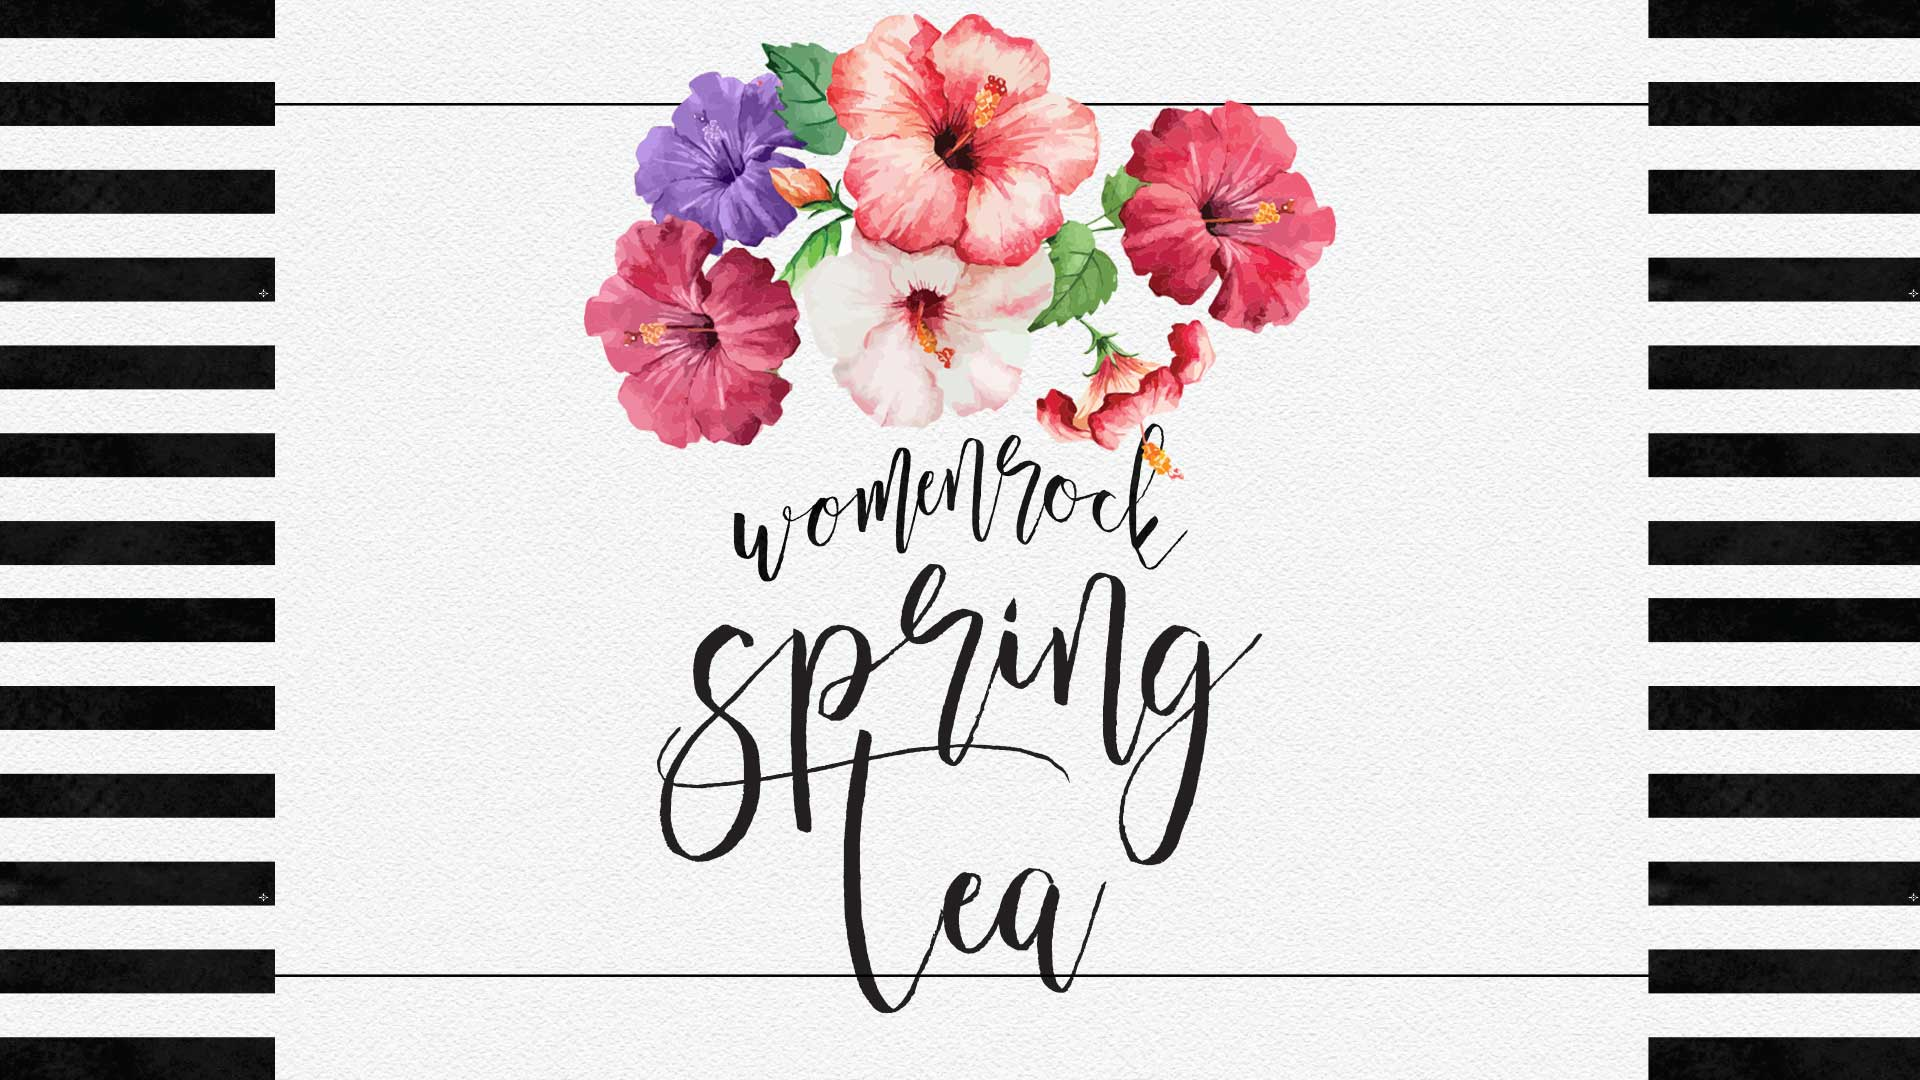 Women Rock Spring Tea